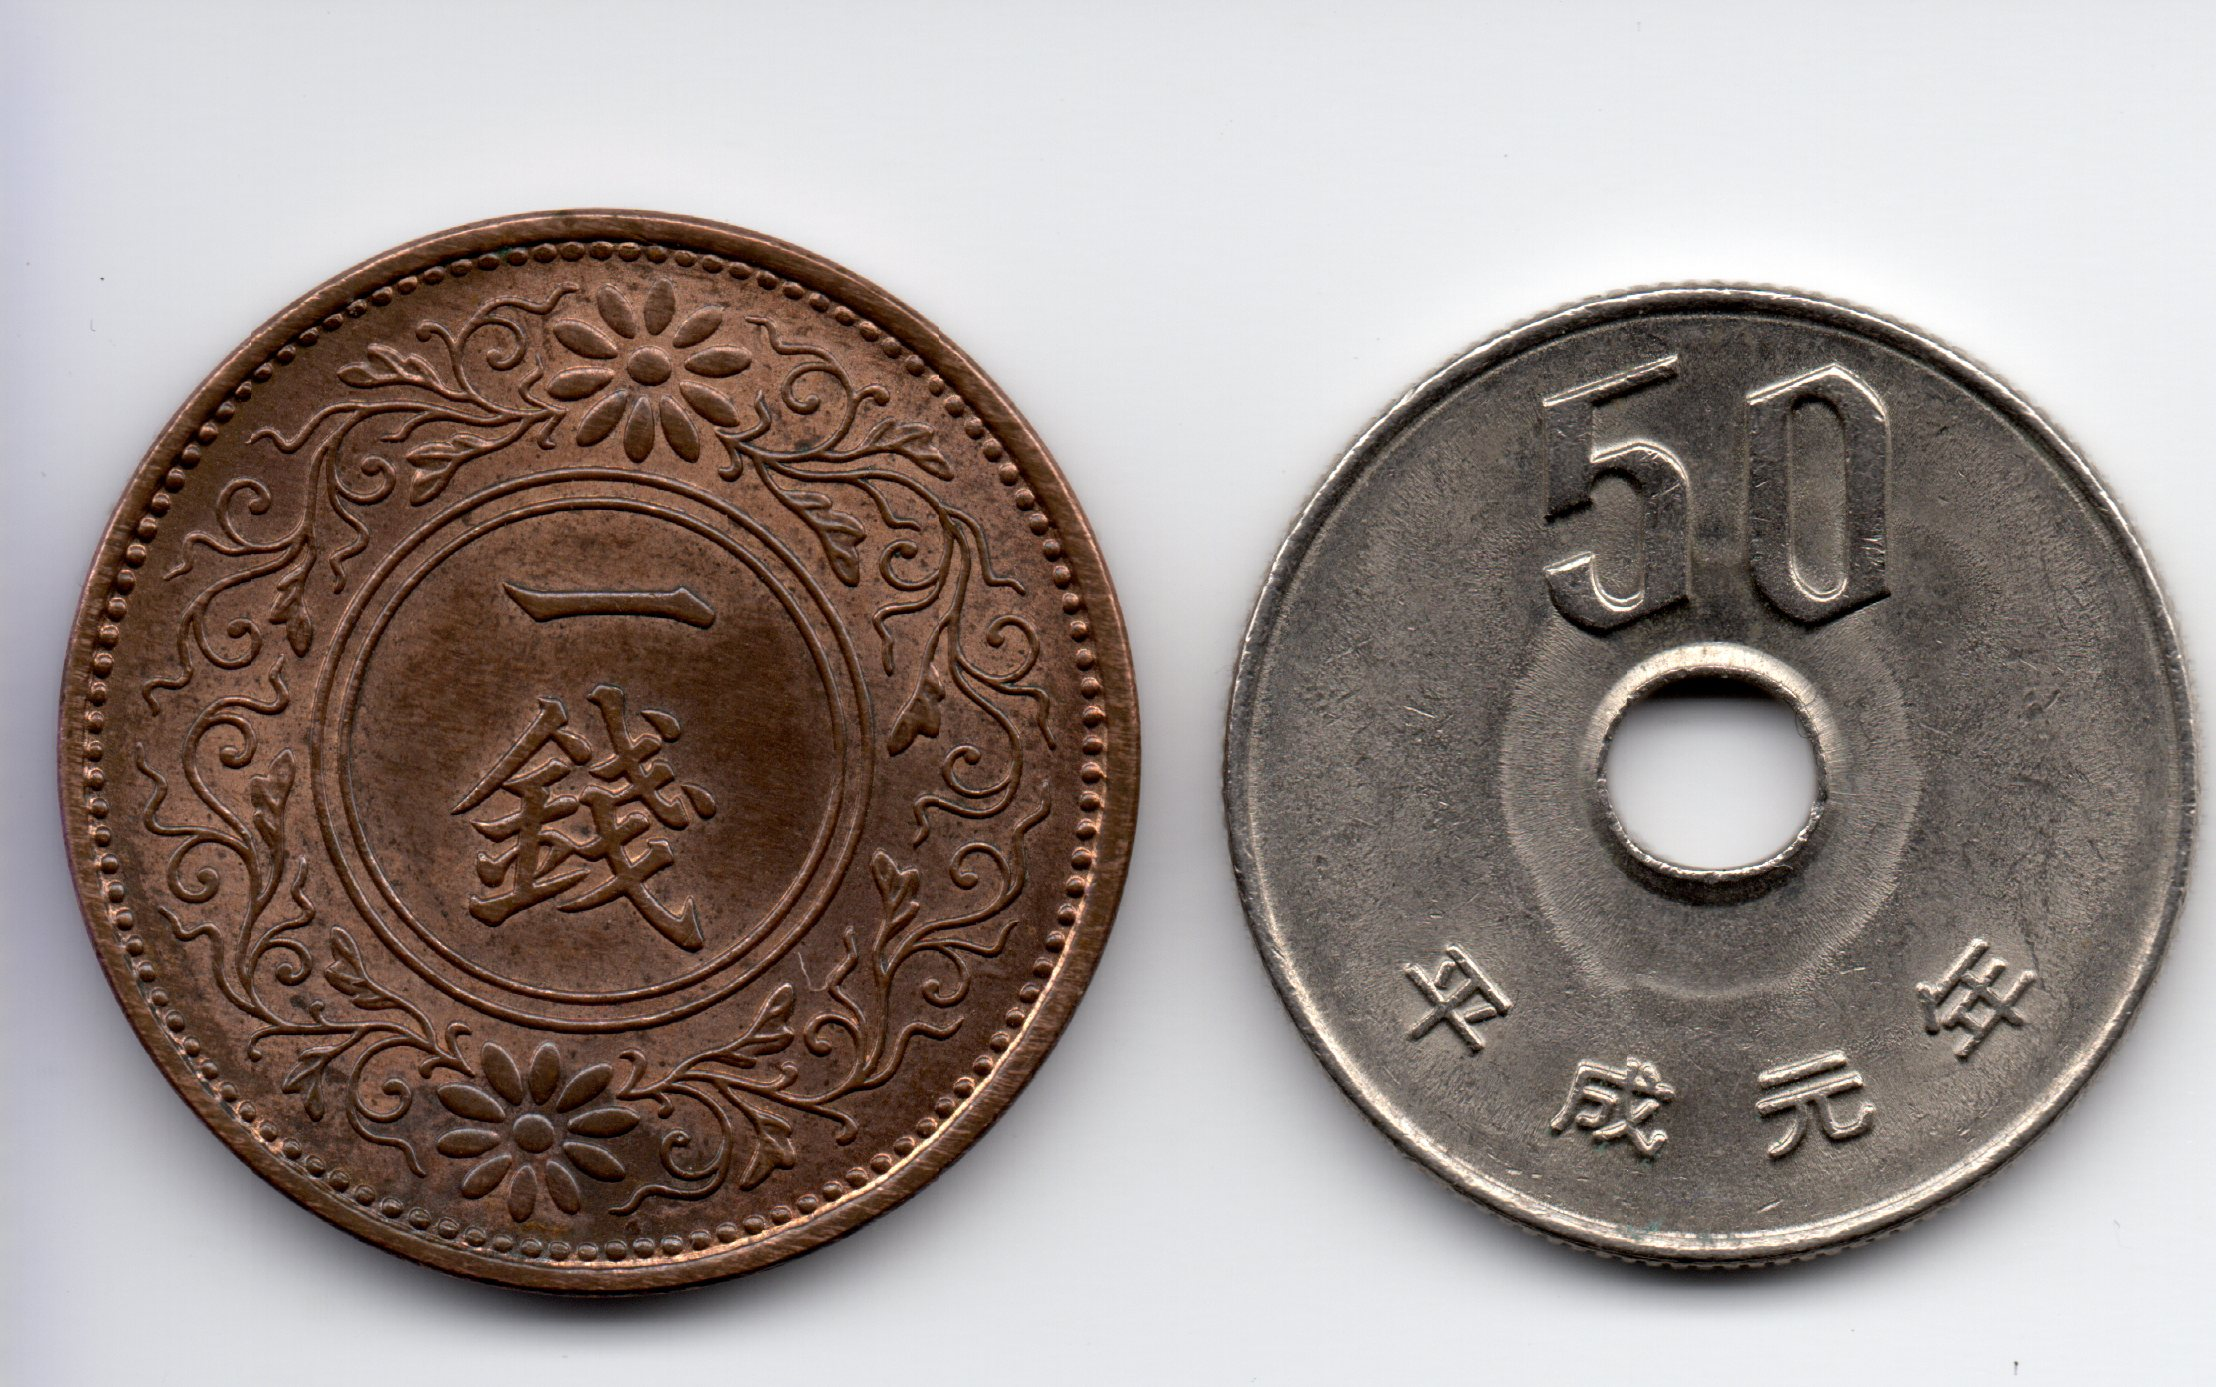 Dating japanese currency